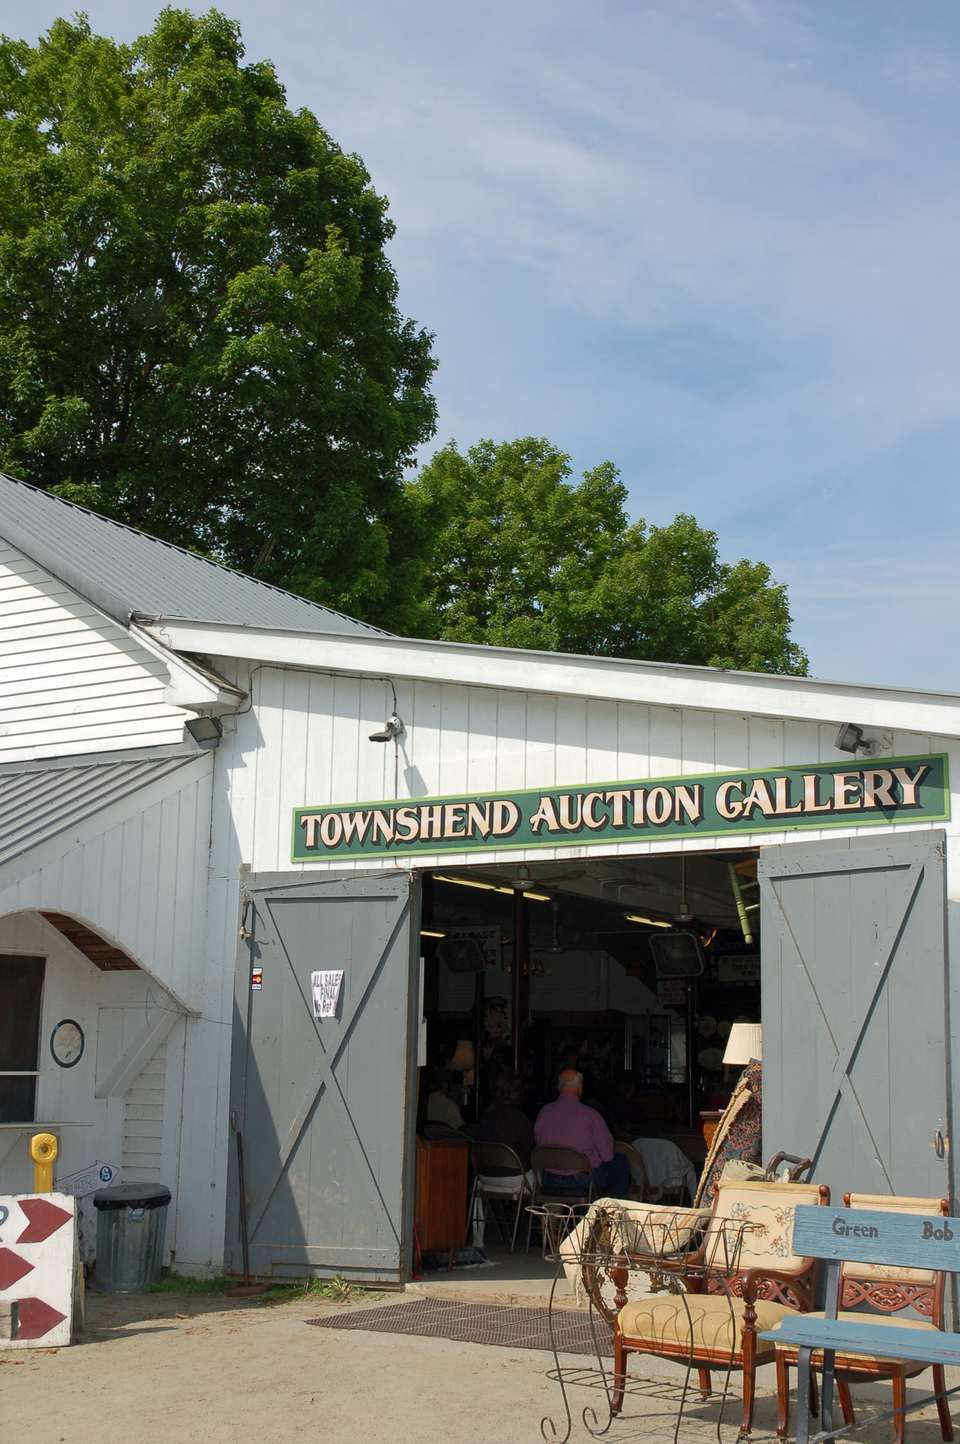 Townshend Auction Gallery in VT